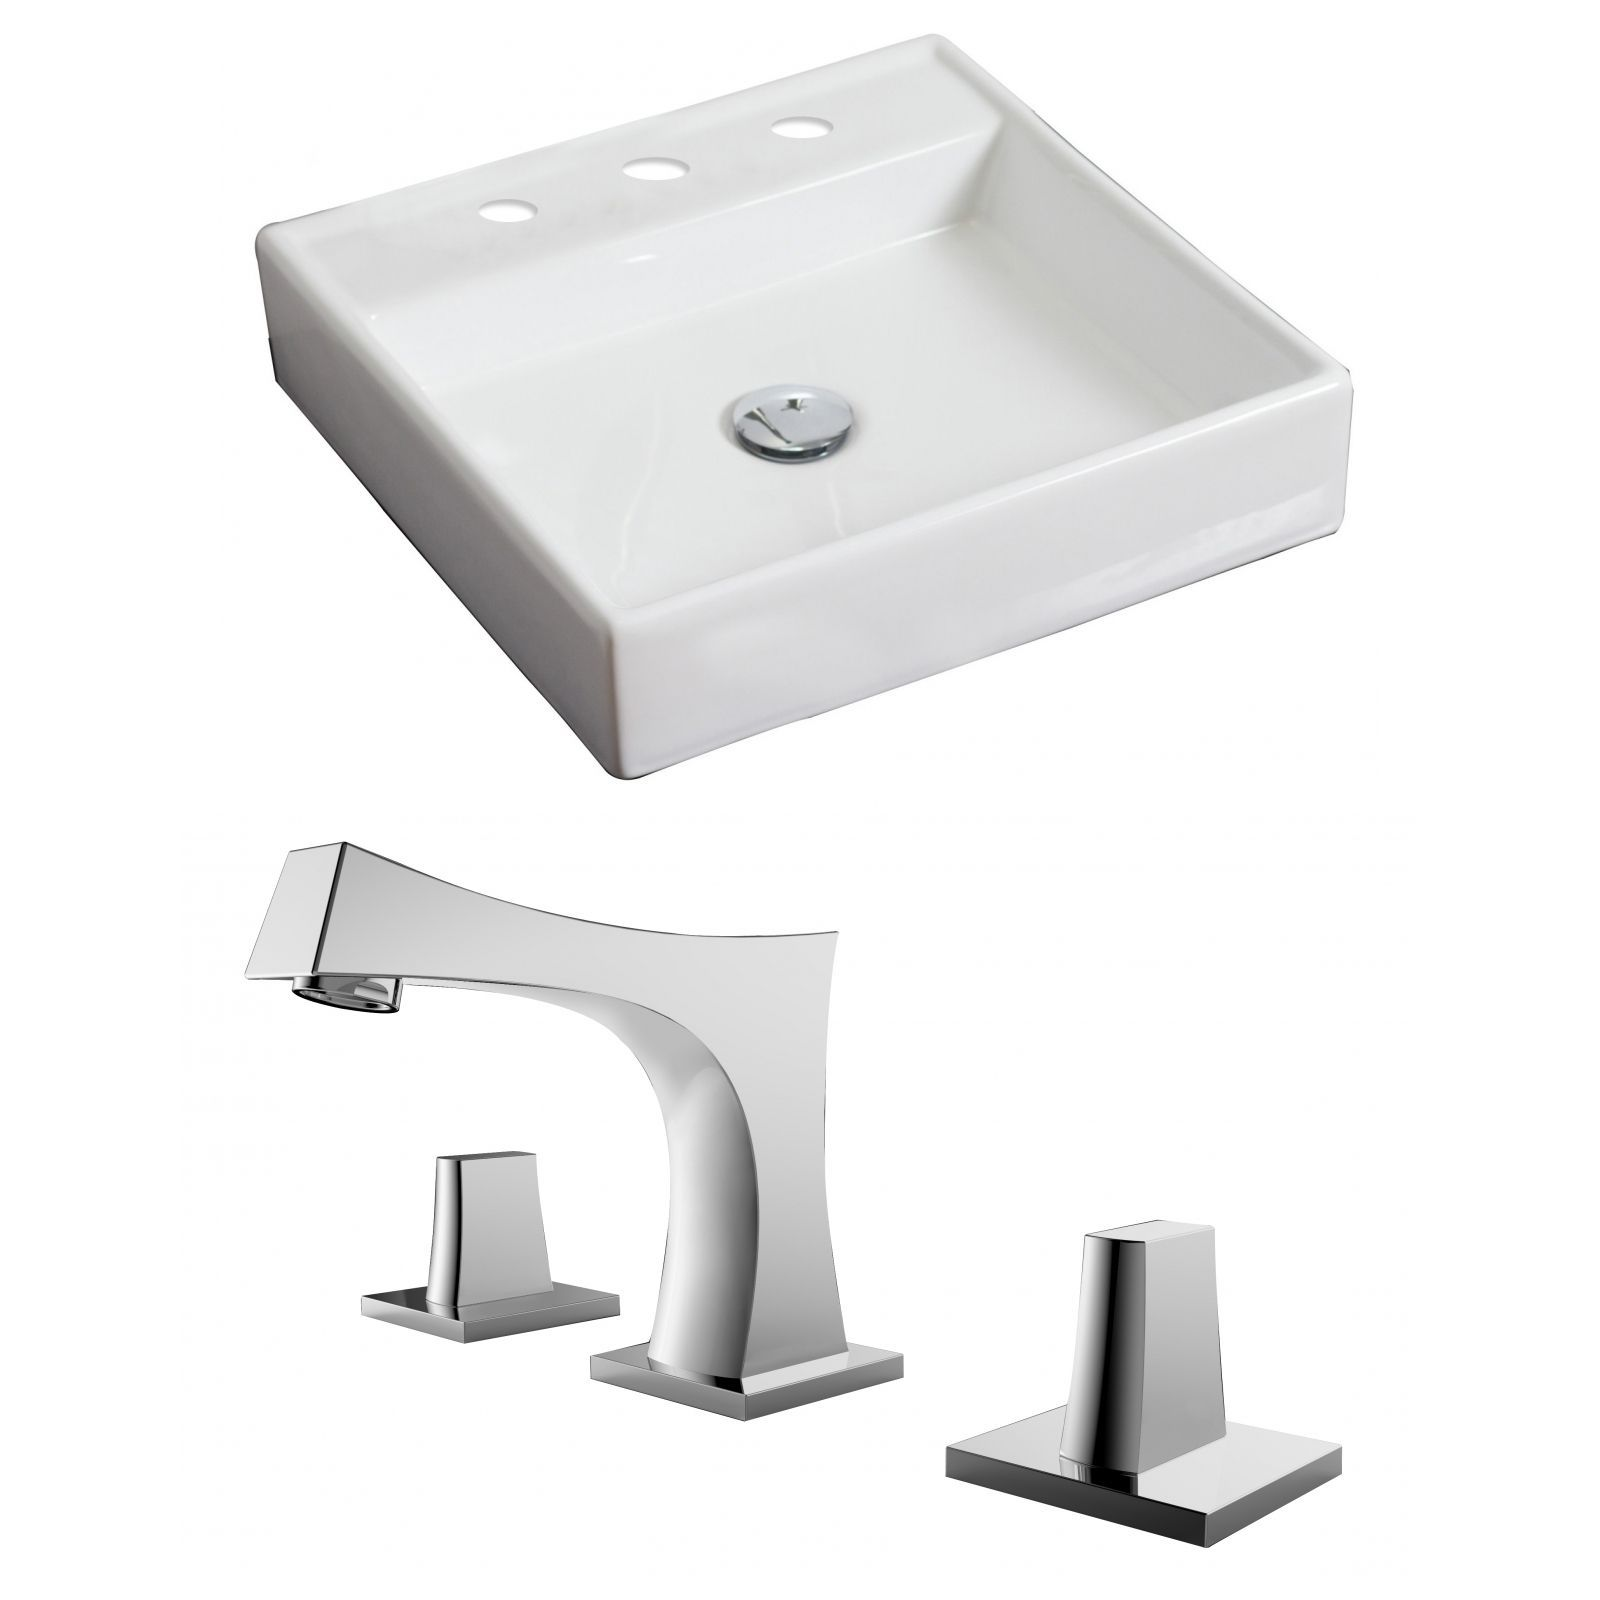 American Imaginations 17.5-in. W x 17.5-in. D Square Vessel Set In Color With 8-in. o.c. Cupc Faucet